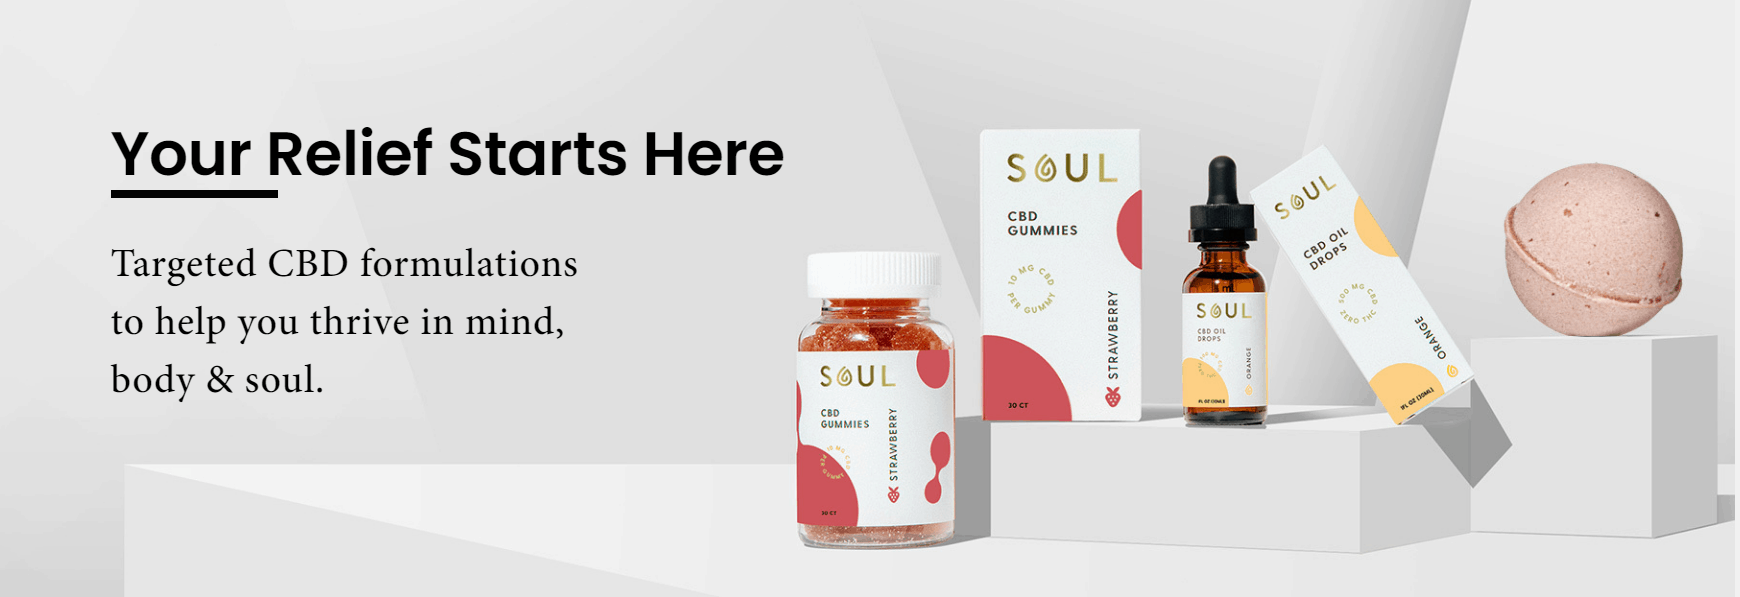 Soul CBD Coupons Your Relief Starts Here